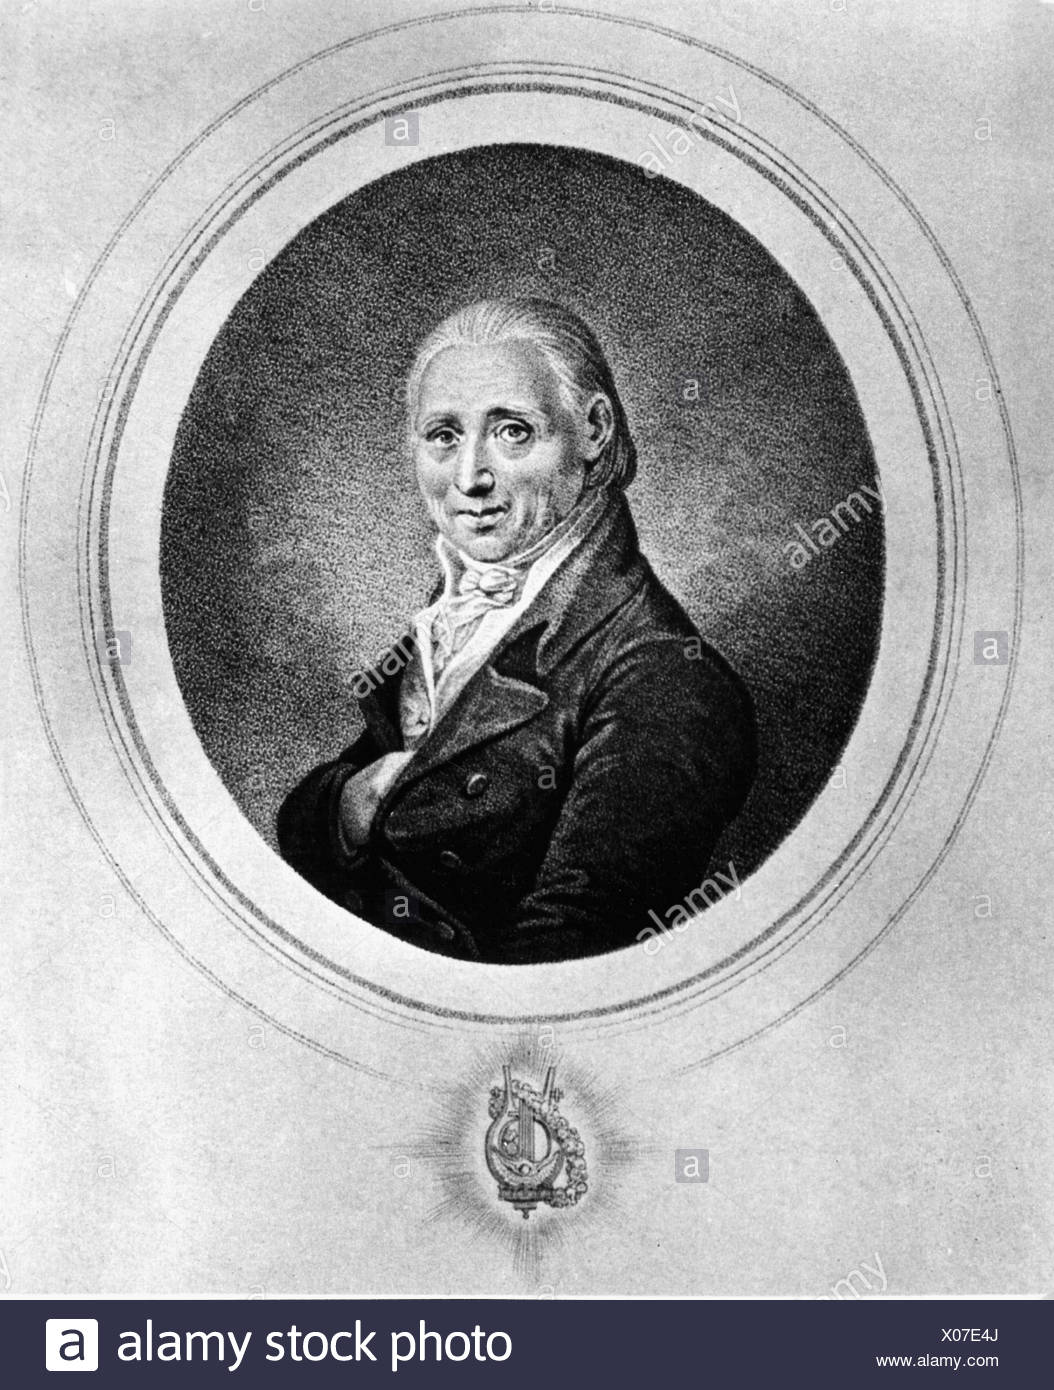 Vanhal, Johann Baptist, 12.5.1739 - 20.8.1813, Bohemian composer, portrait, oval, Additional-Rights-Clearances-NA - Stock Image